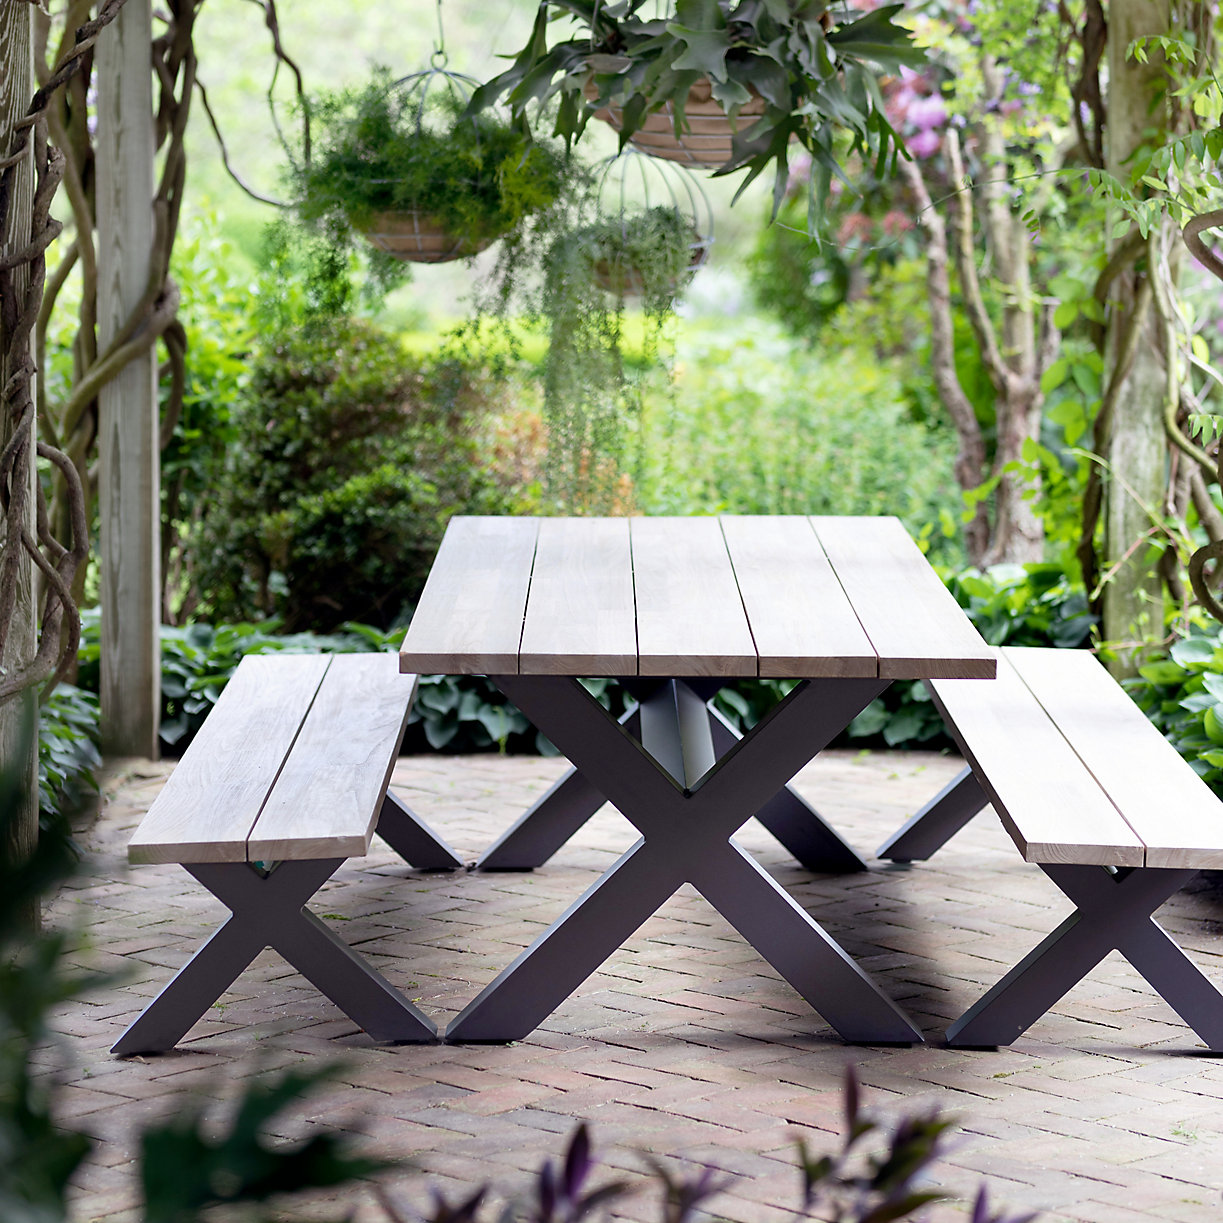 Picnic table with wooden slats